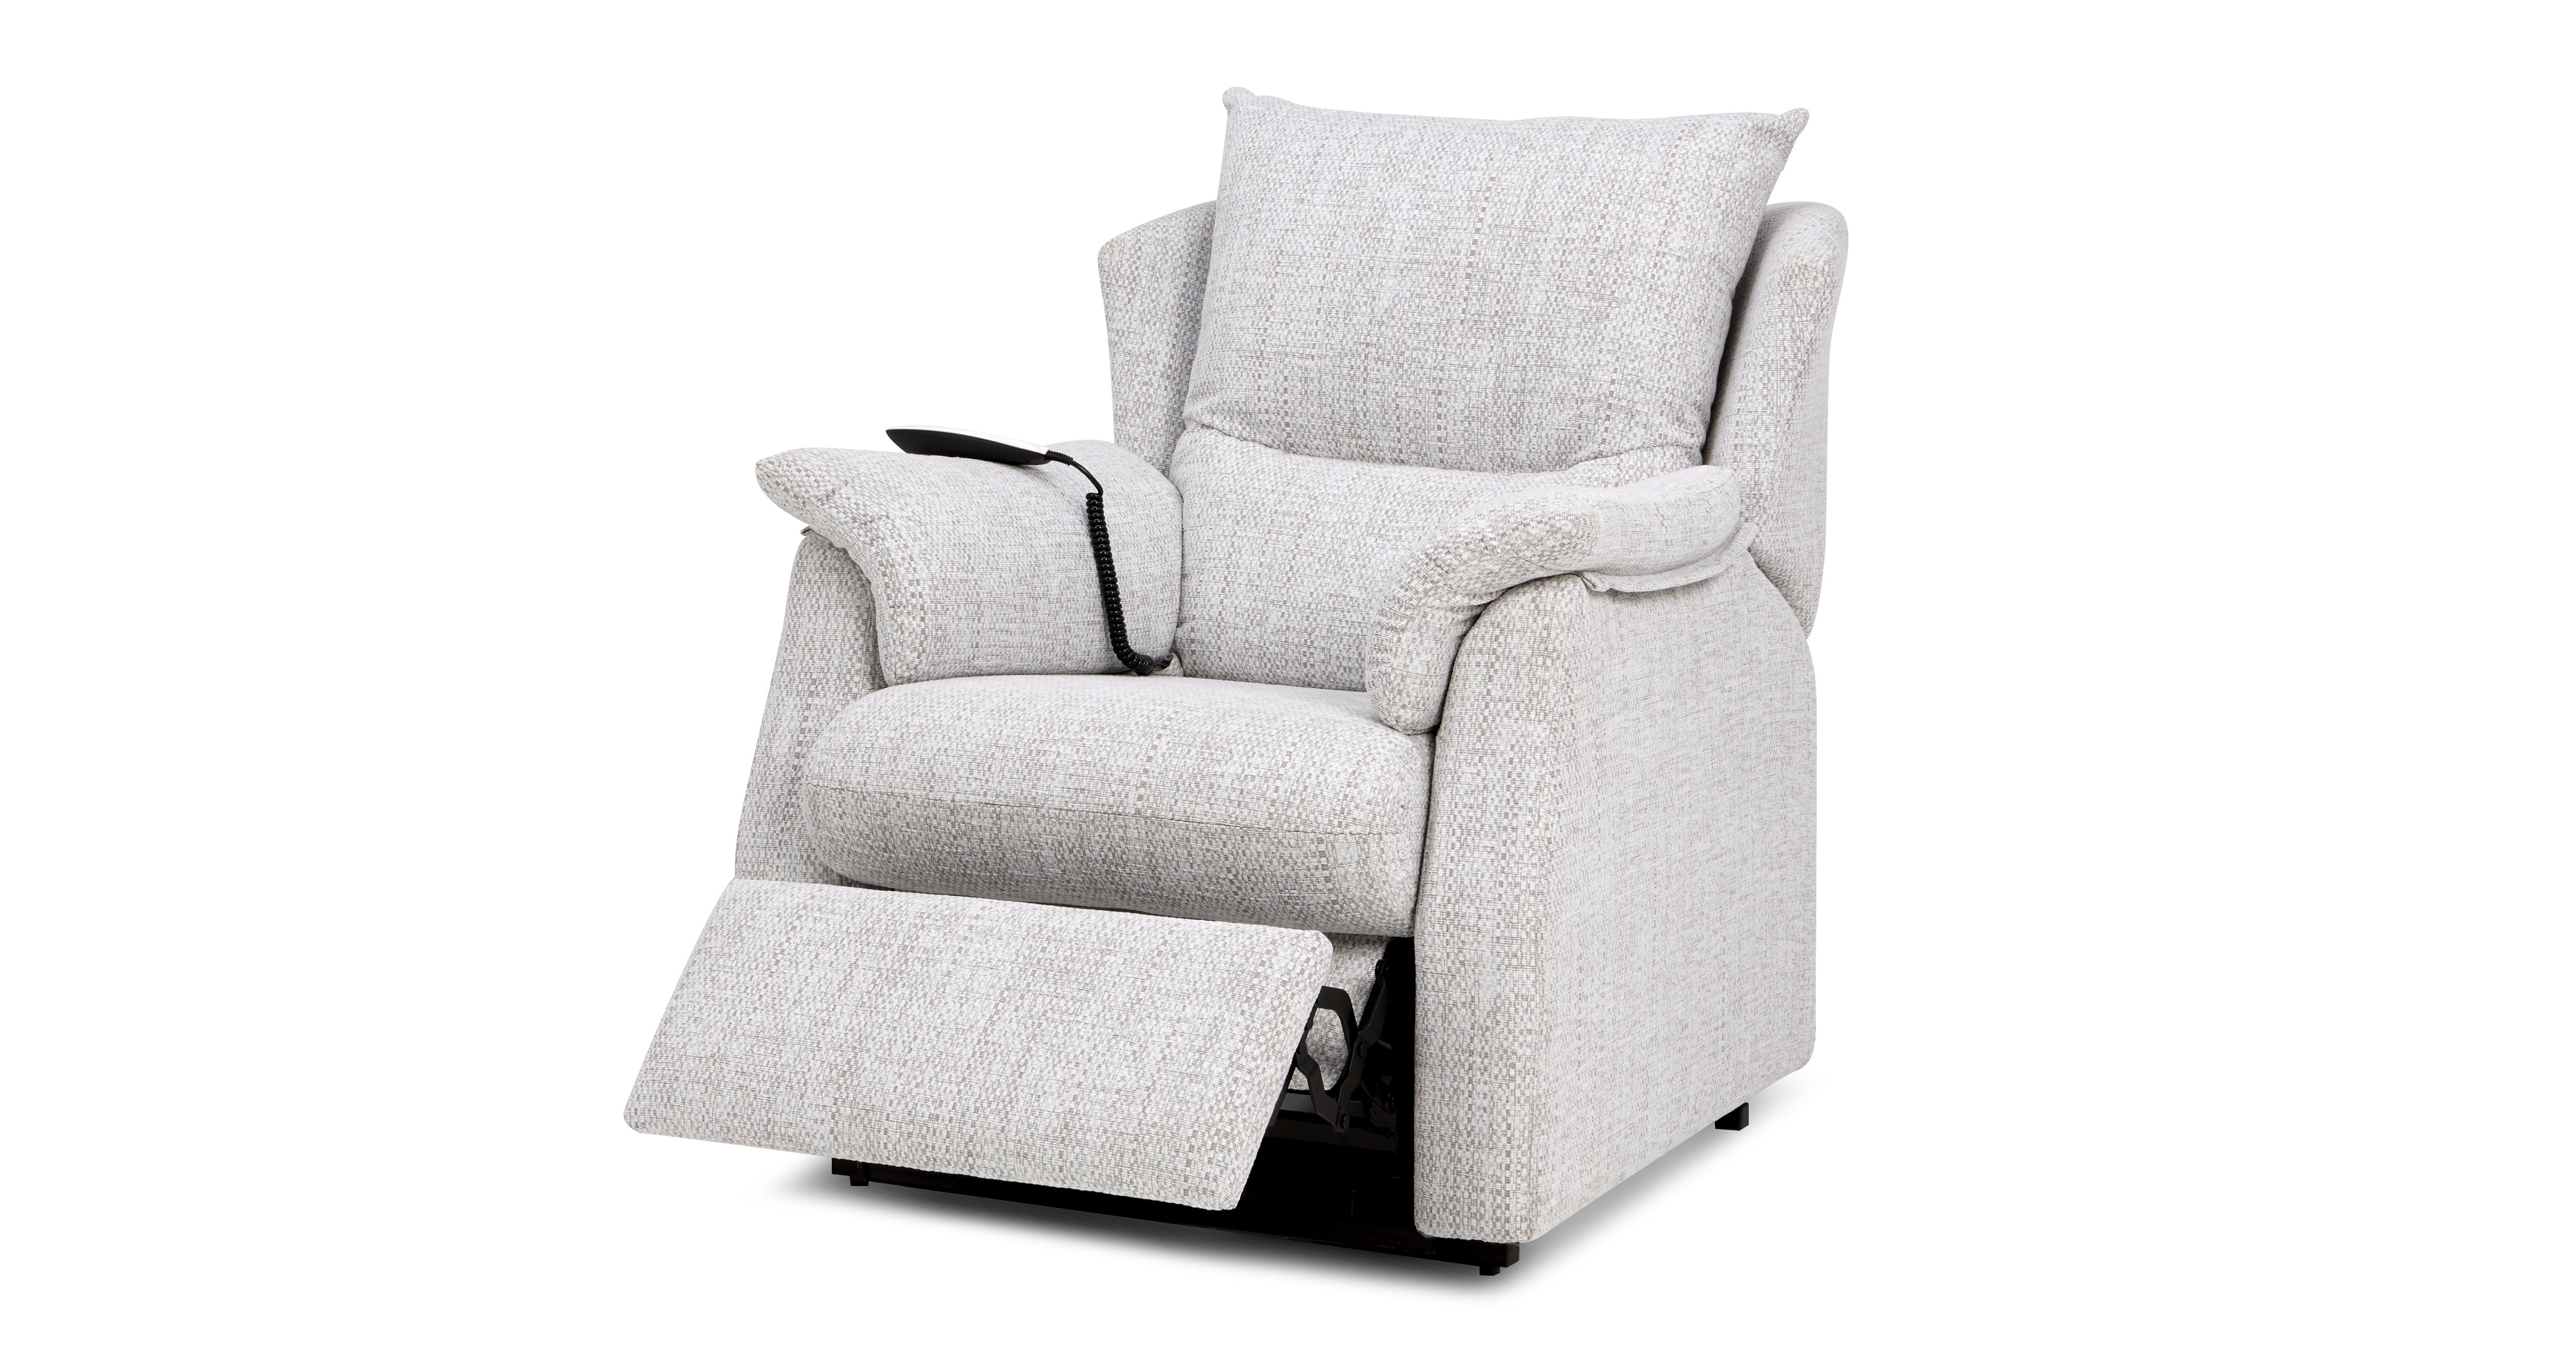 Stow Fabric D Rise And Tilt Electric Recliner Chair G Plan